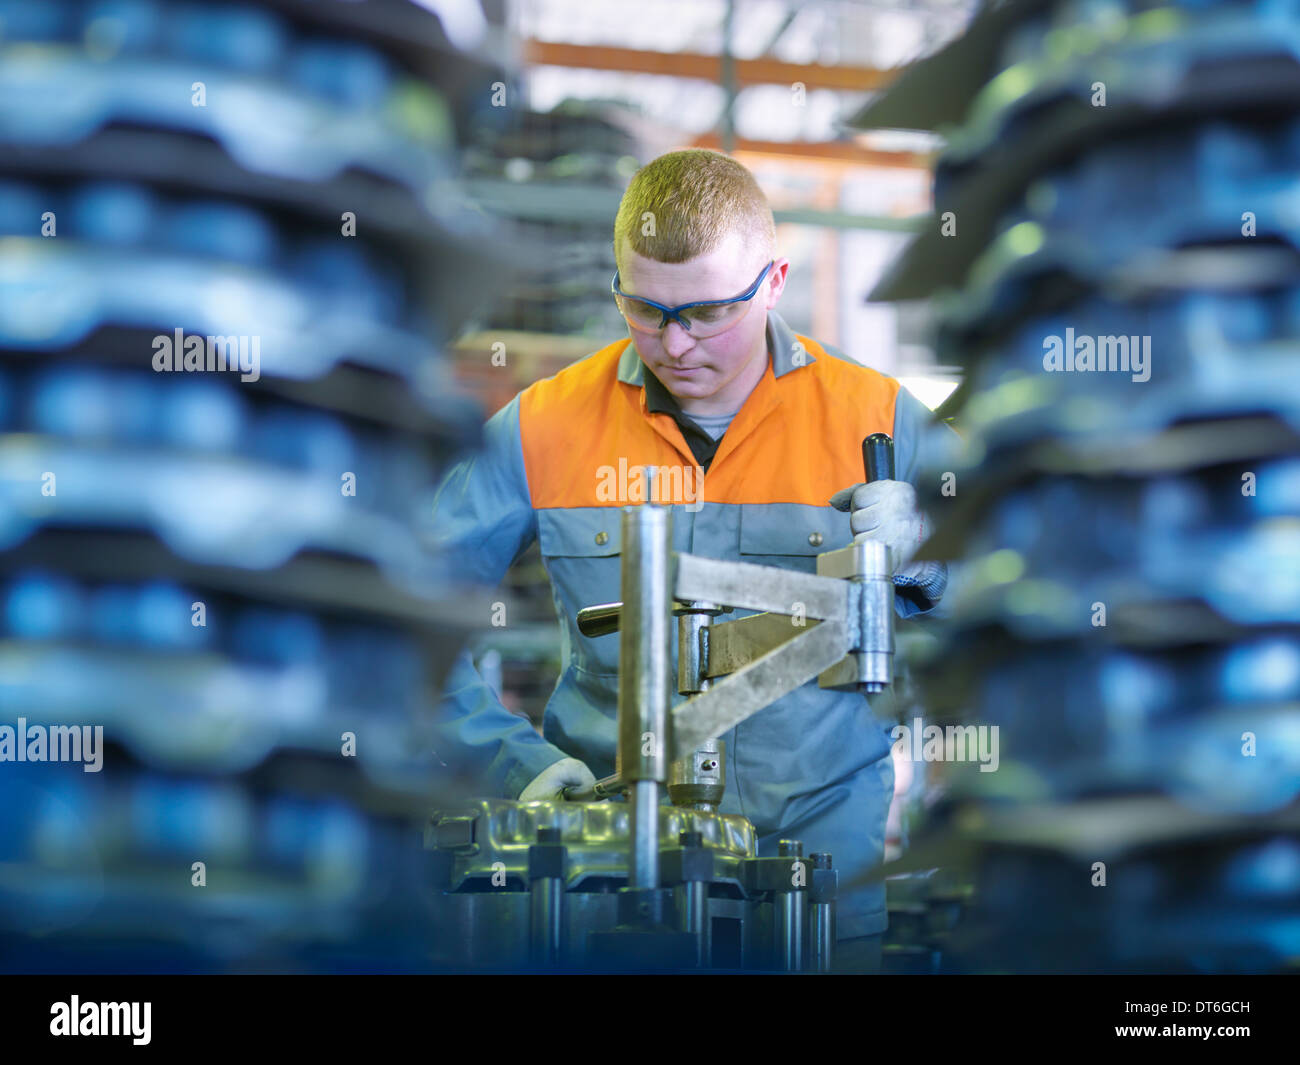 Worker on production line in industrial clutch factory - Stock Image